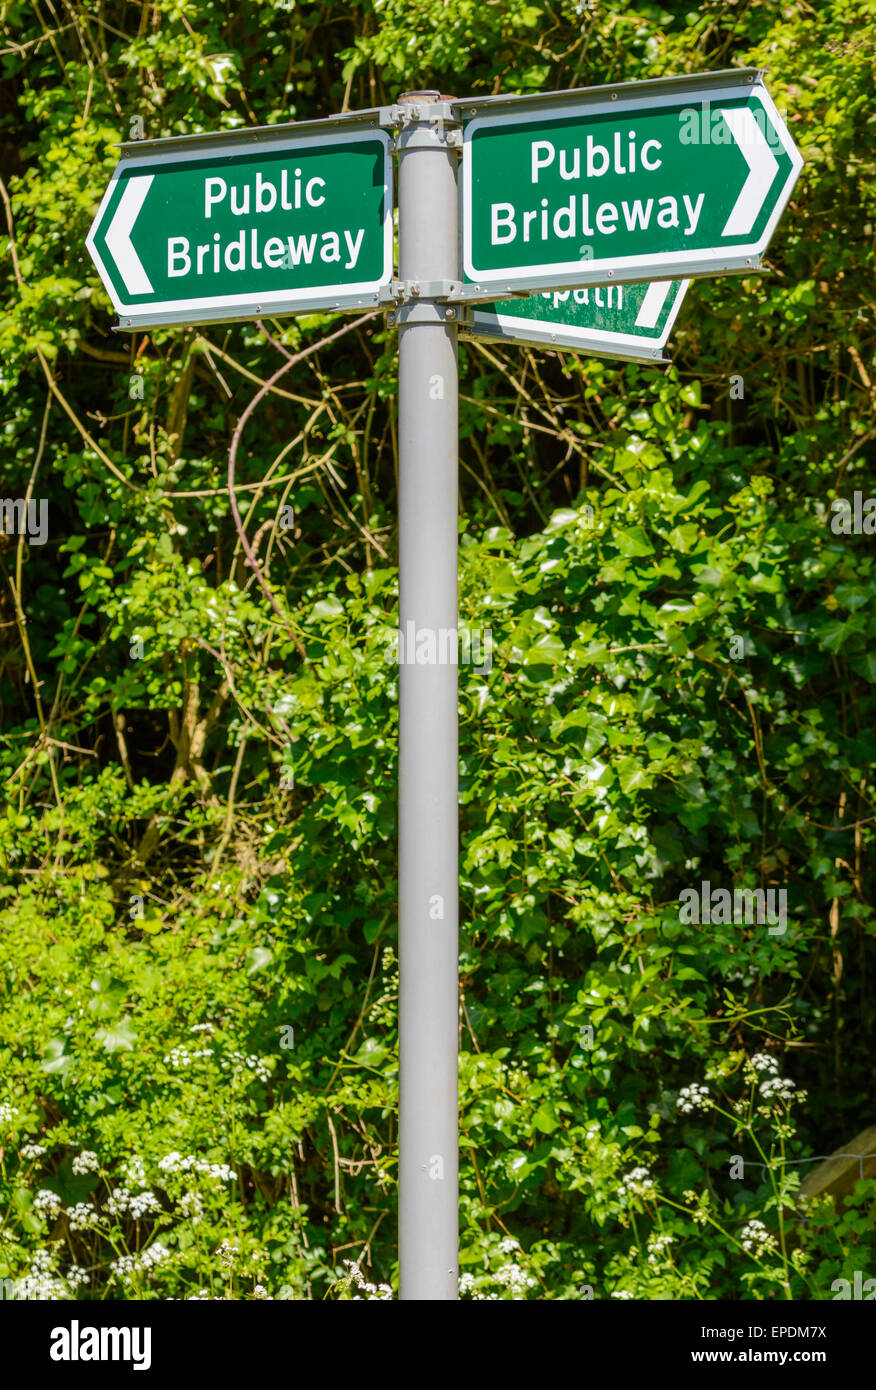 Public Bridleway finger post sign in the UK. - Stock Image